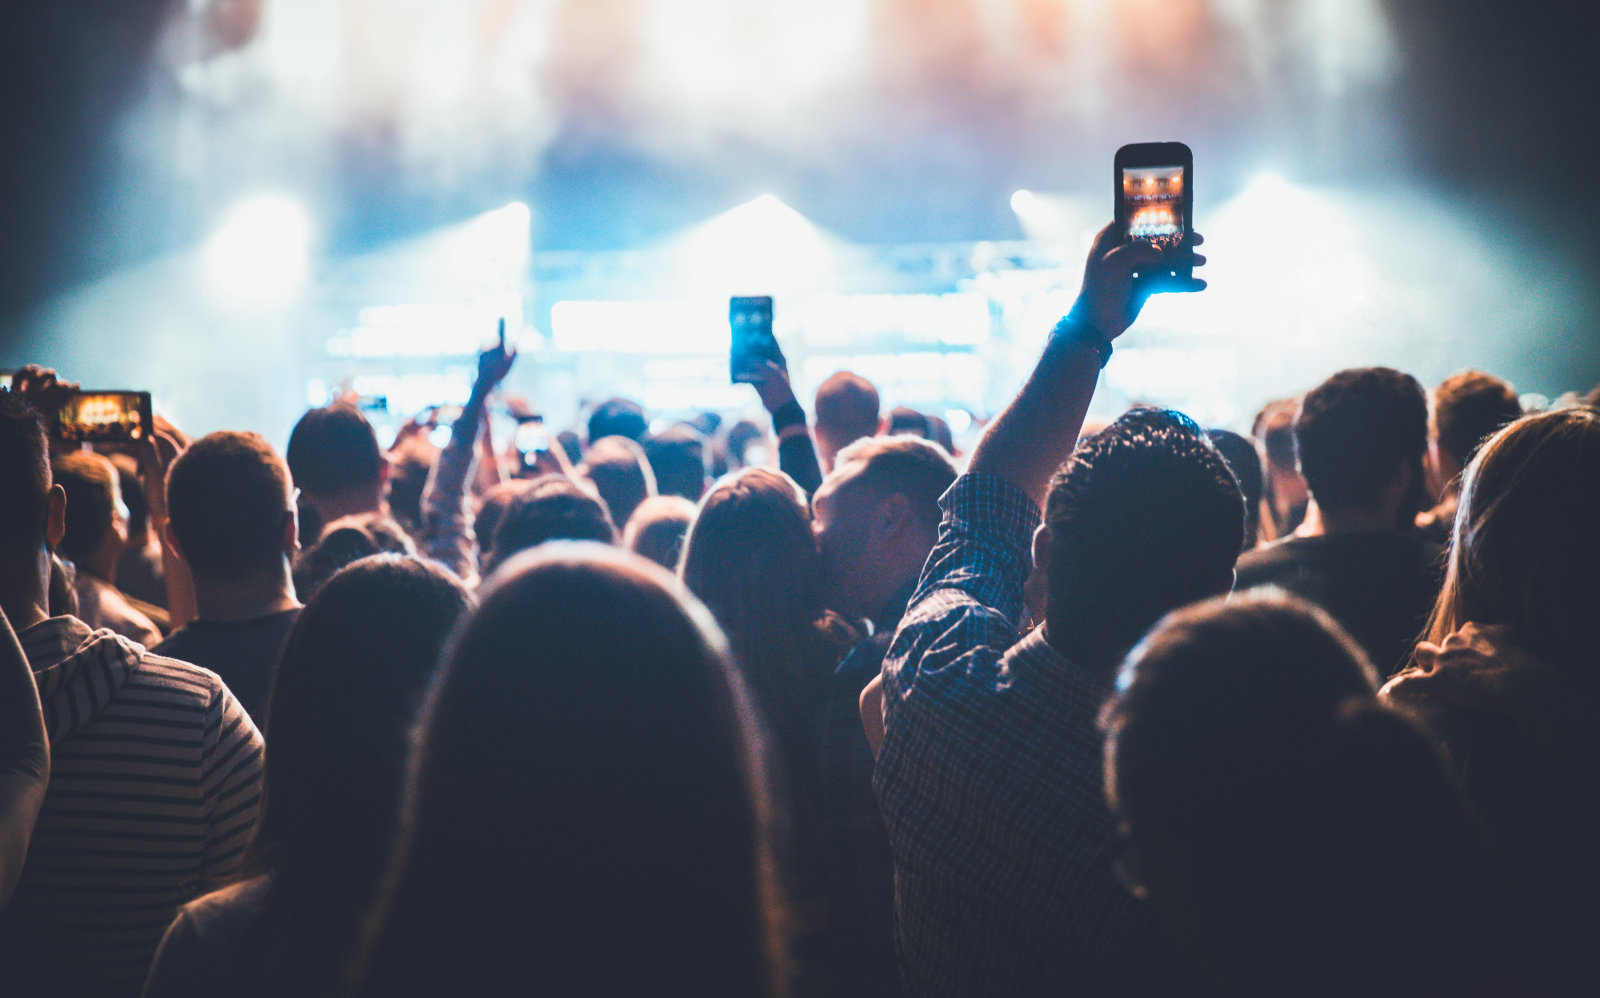 Concert audience holding mobile phones during a rock concert.